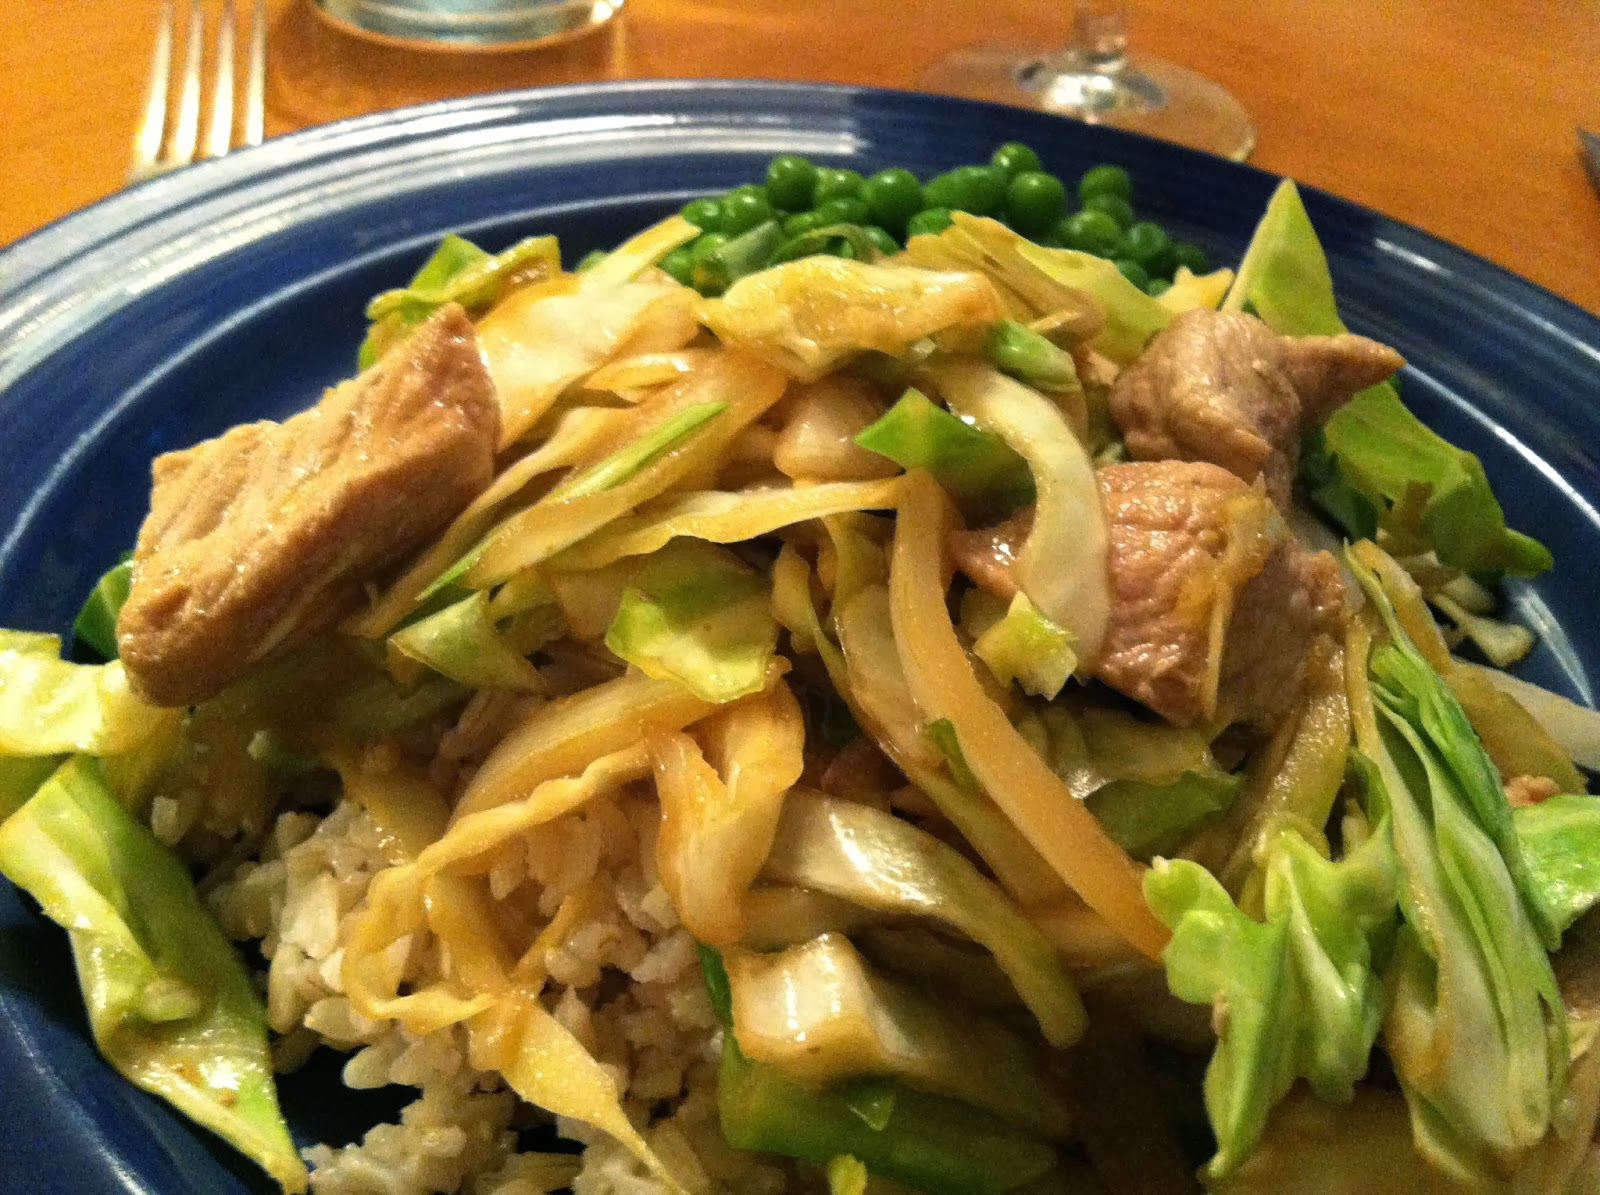 pork and cabbage served over brown rice